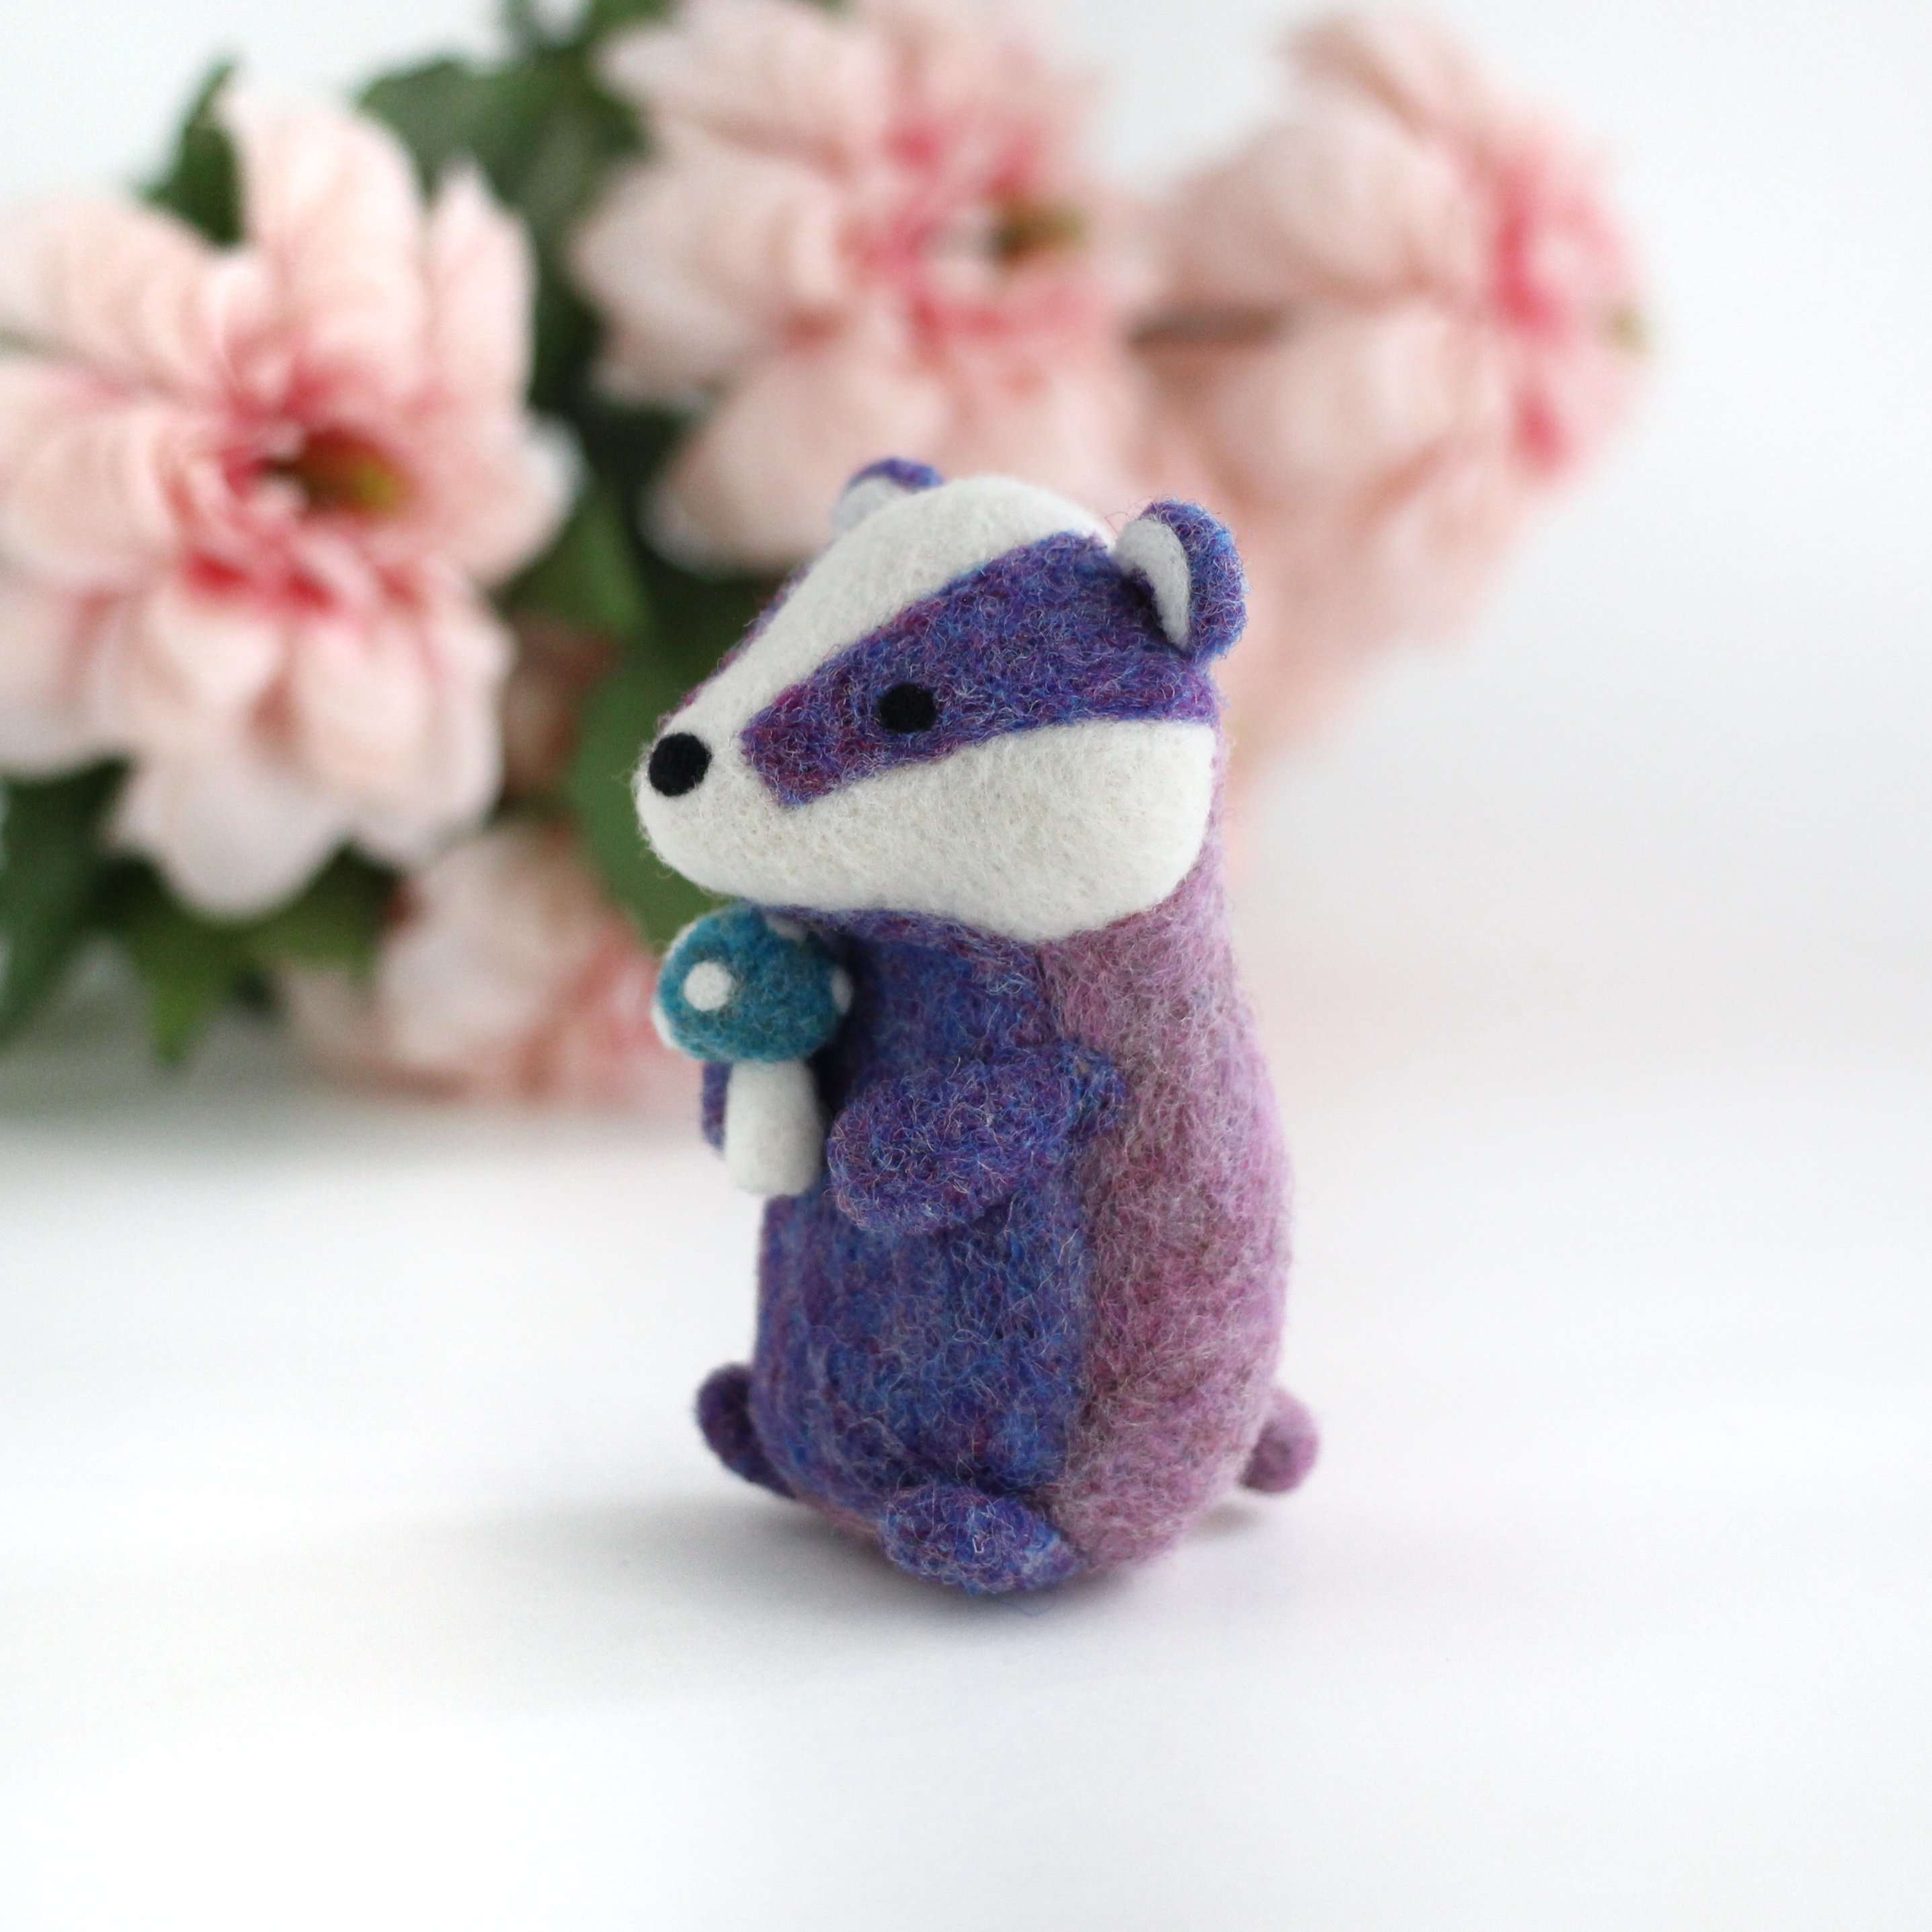 Needle Felted Purple Badger with Magical Mushroom by Wild Whimsy Woolies